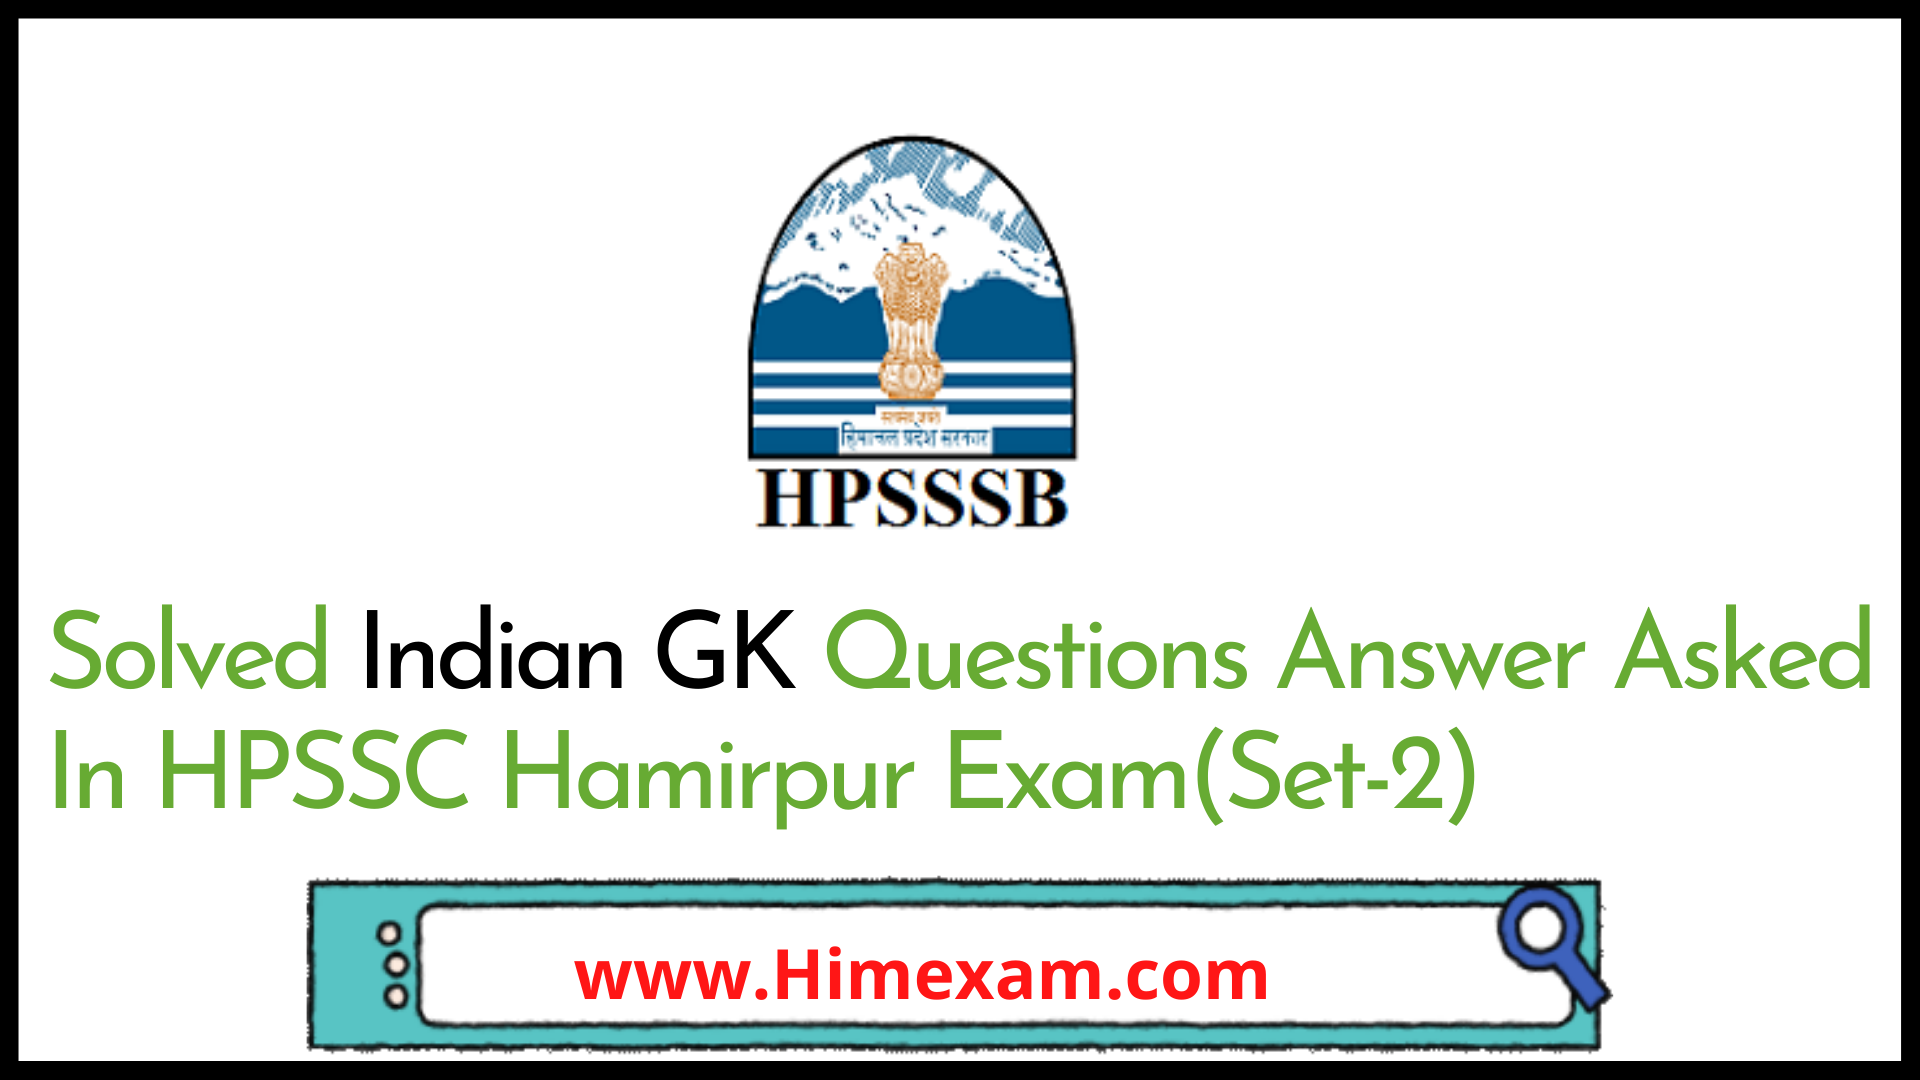 Solved Indian GK Questions Answer Asked In HPSSC Hamirpur Exam(Set-2)